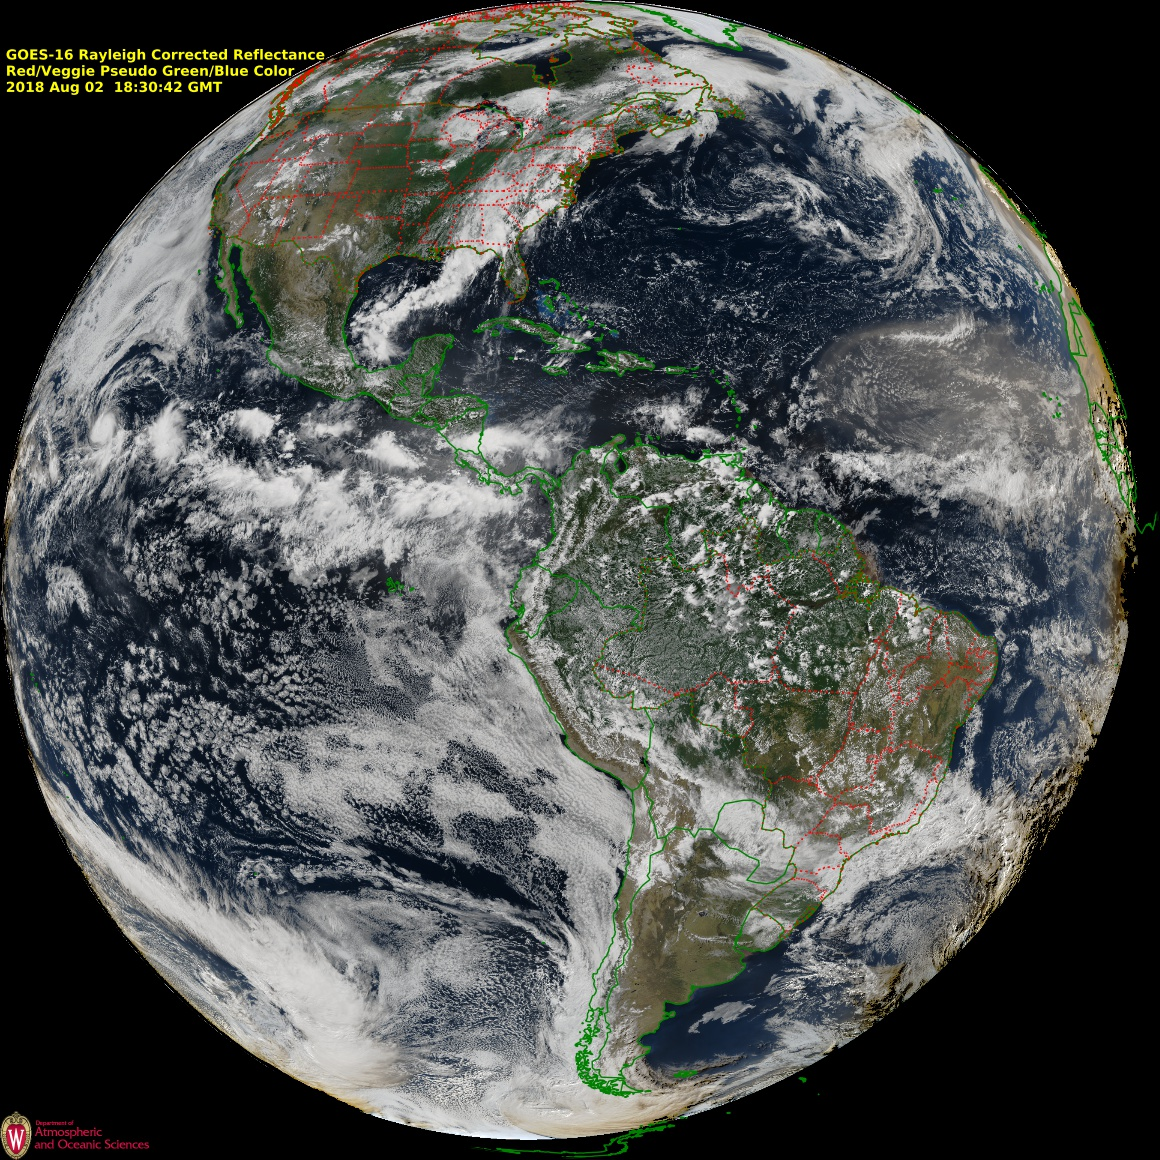 GOES-16 Natural Color RGB images [click to play MP4 animation]